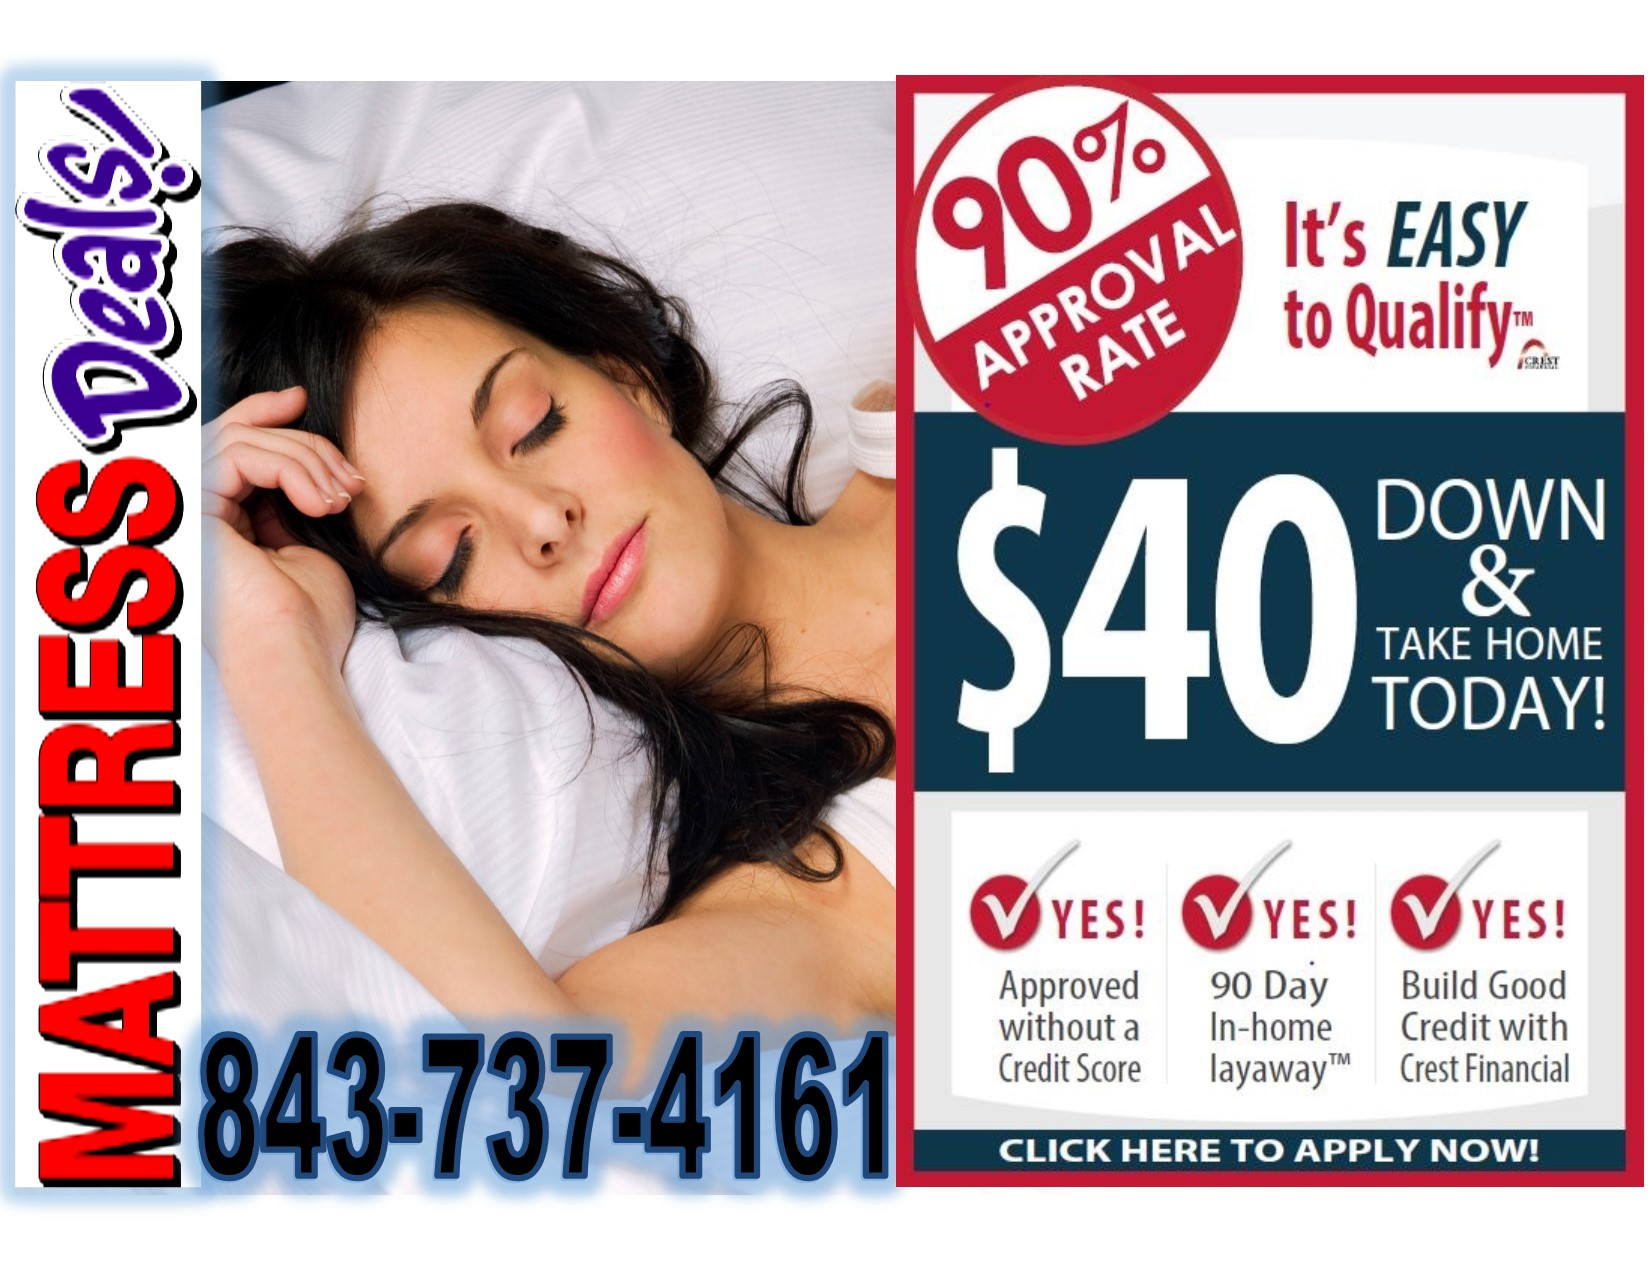 Mattress Deals image 21